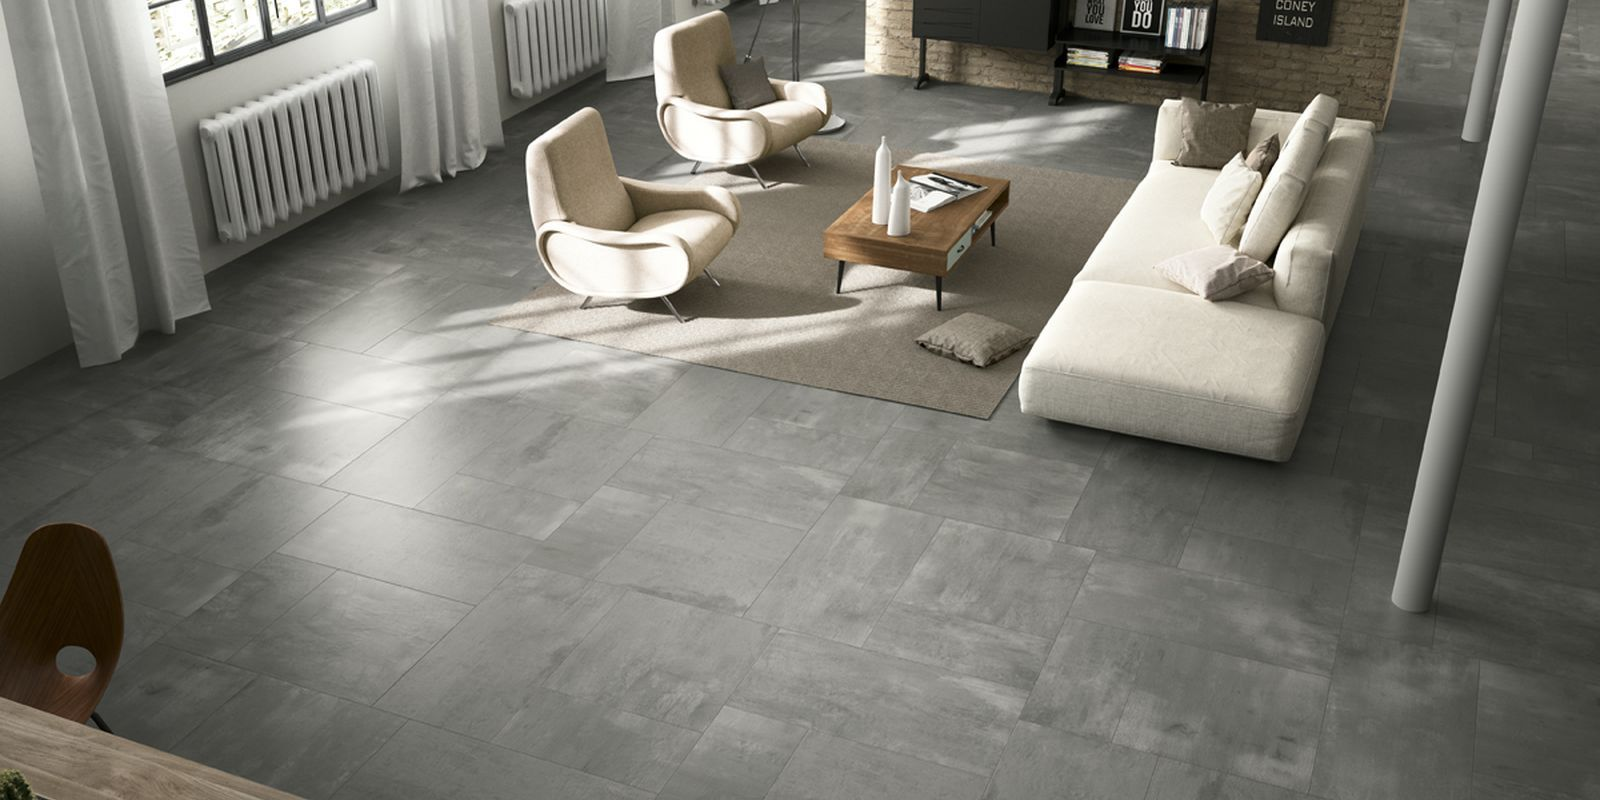 Creative concrete tiles living modern ceramic full body porcelain creative concrete tiles living modern ceramic full body porcelain tile am creacon 1a dailygadgetfo Gallery